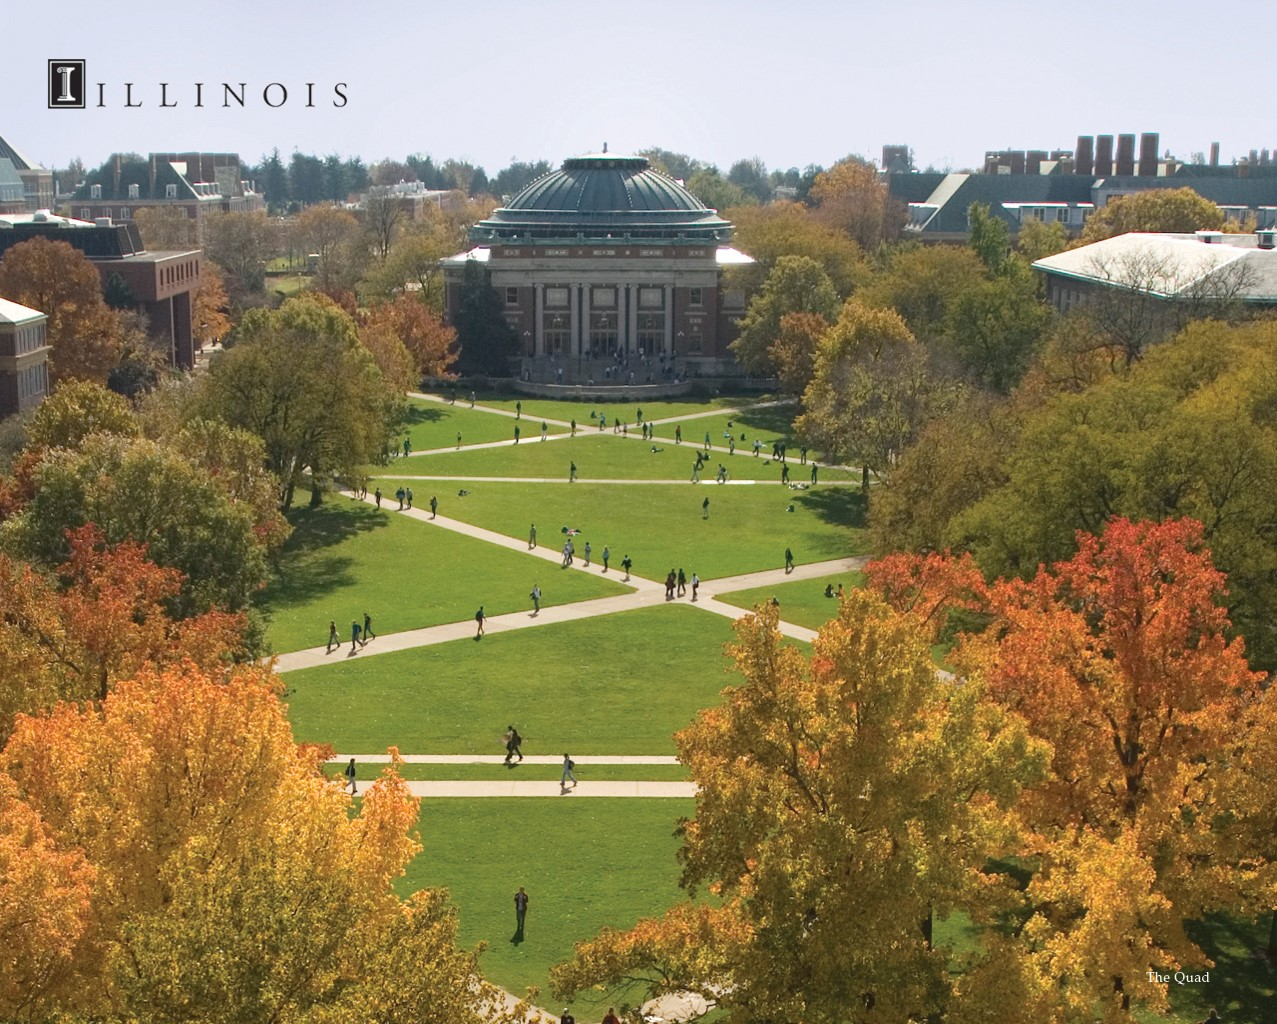 Image of the University of Illinois campus